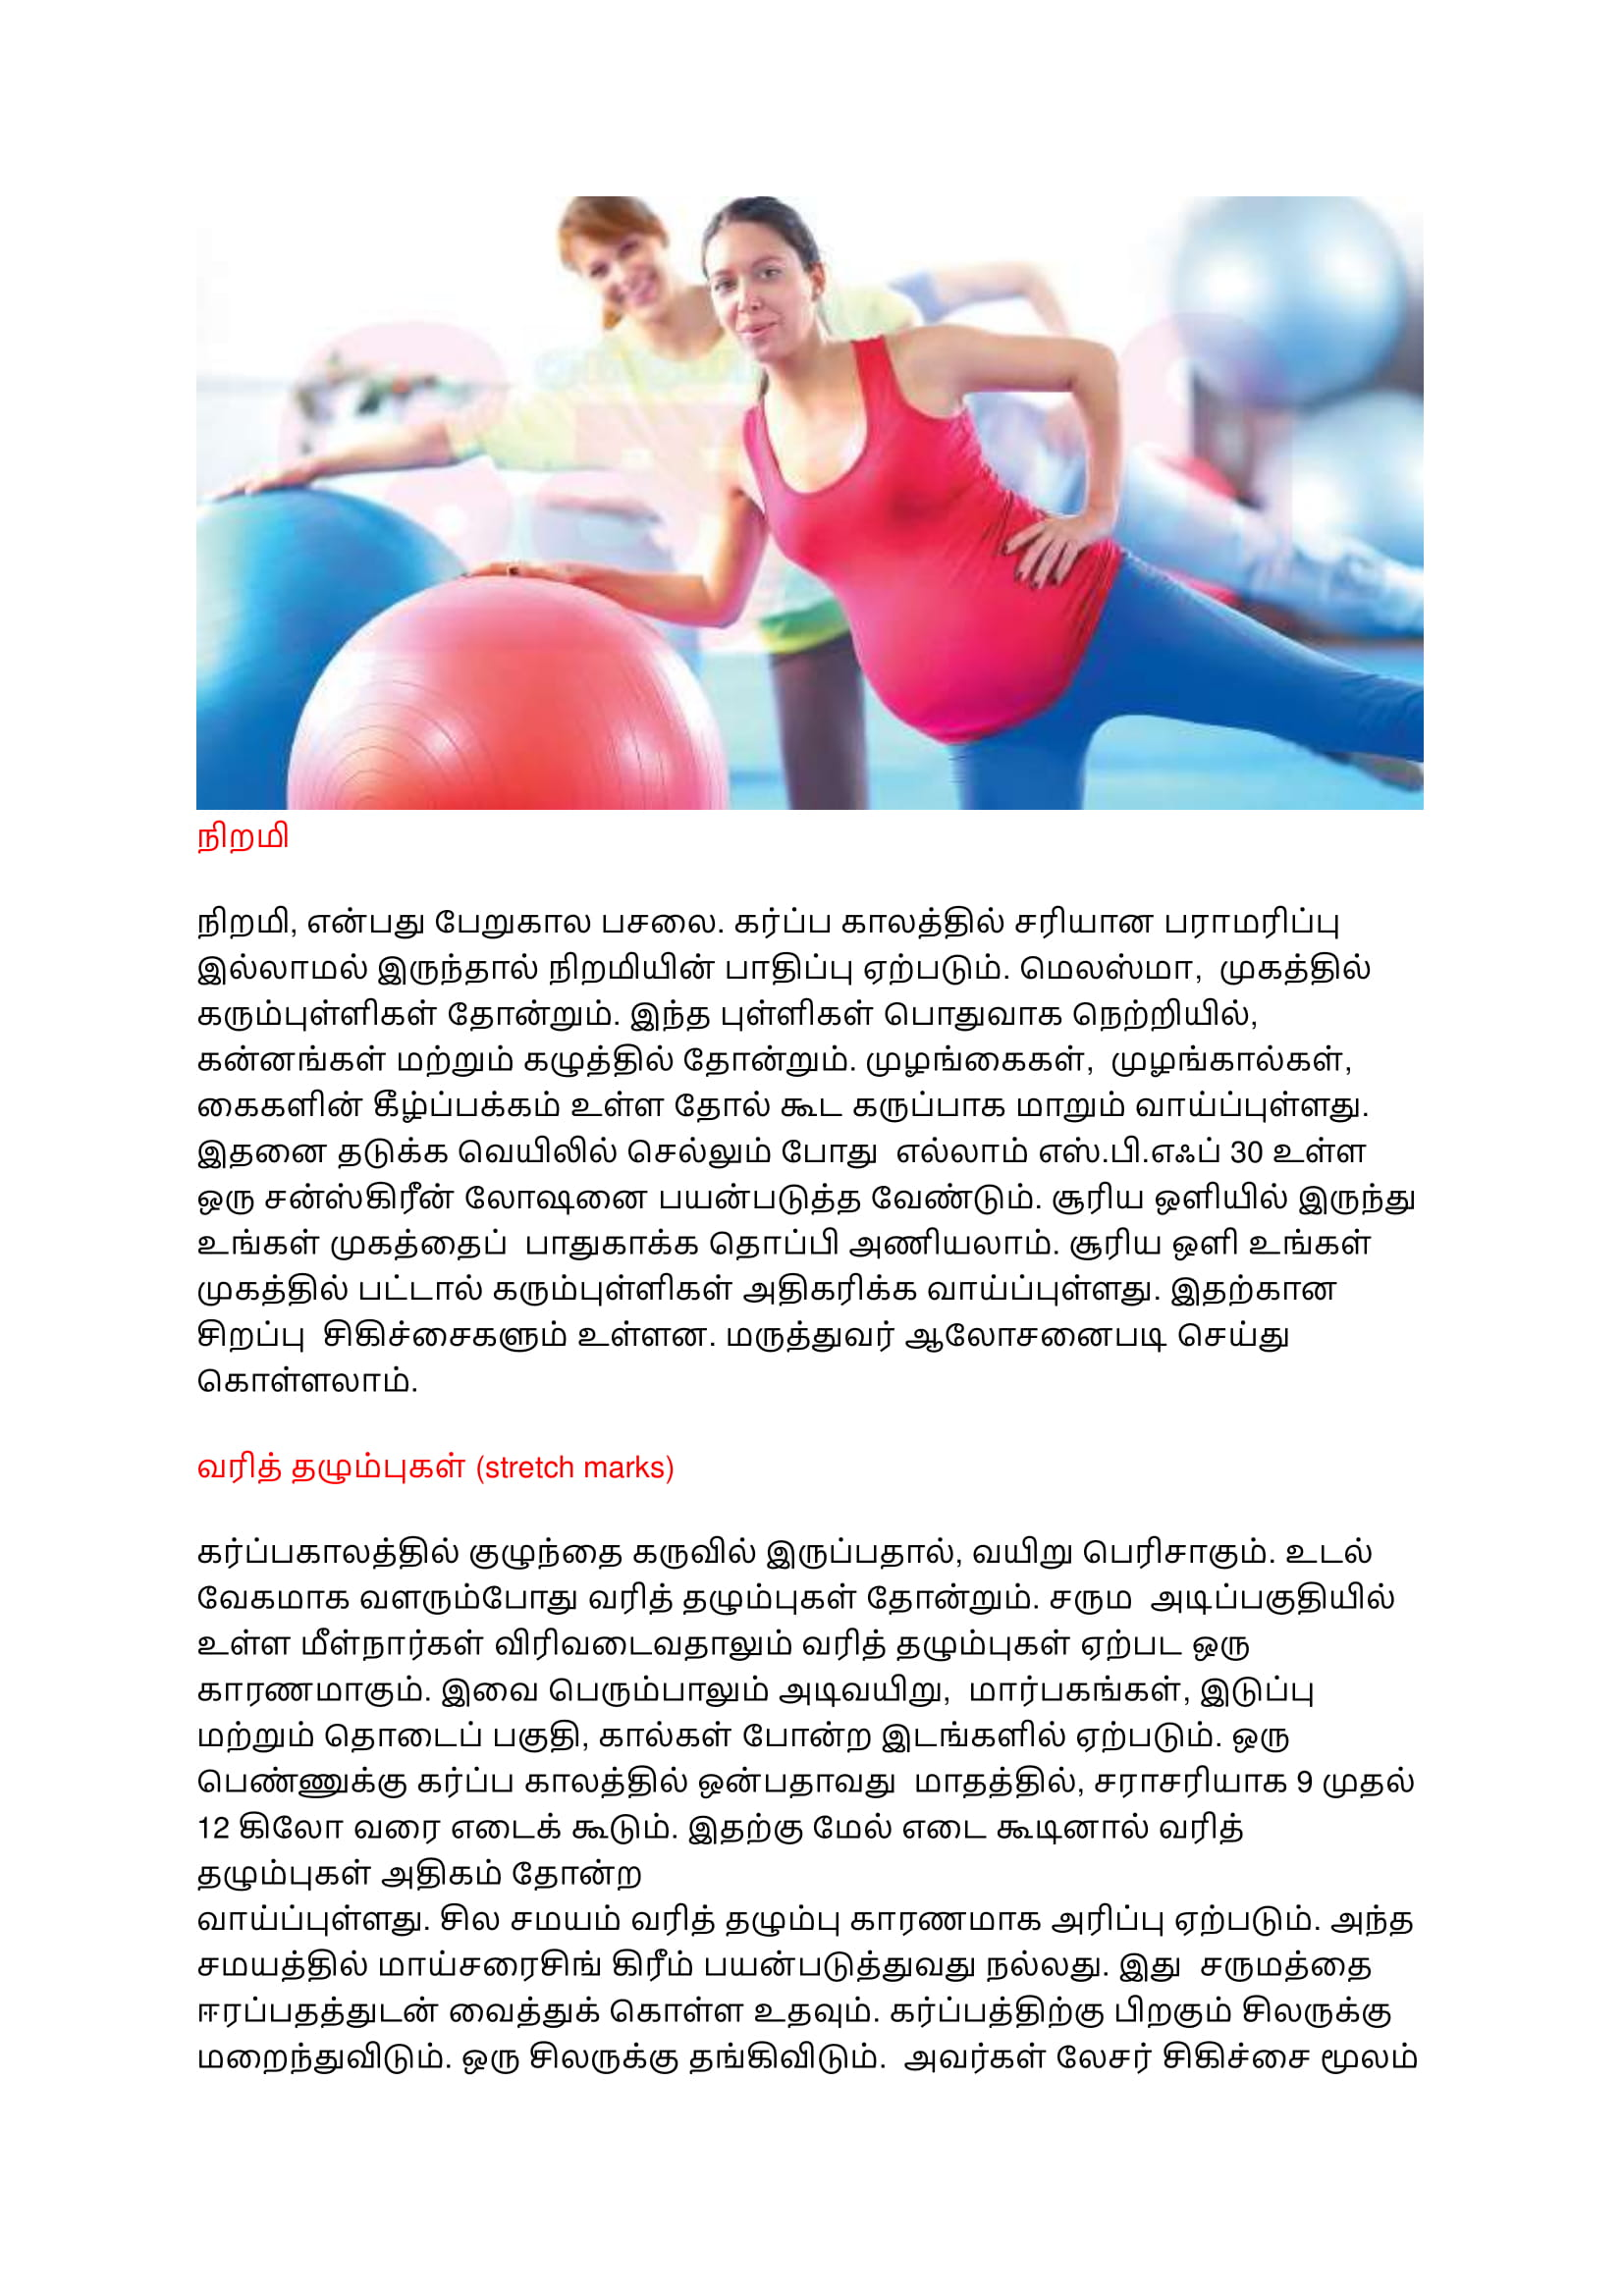 Post Pregnancy Skin and Haircare - Kungumam Tozhi